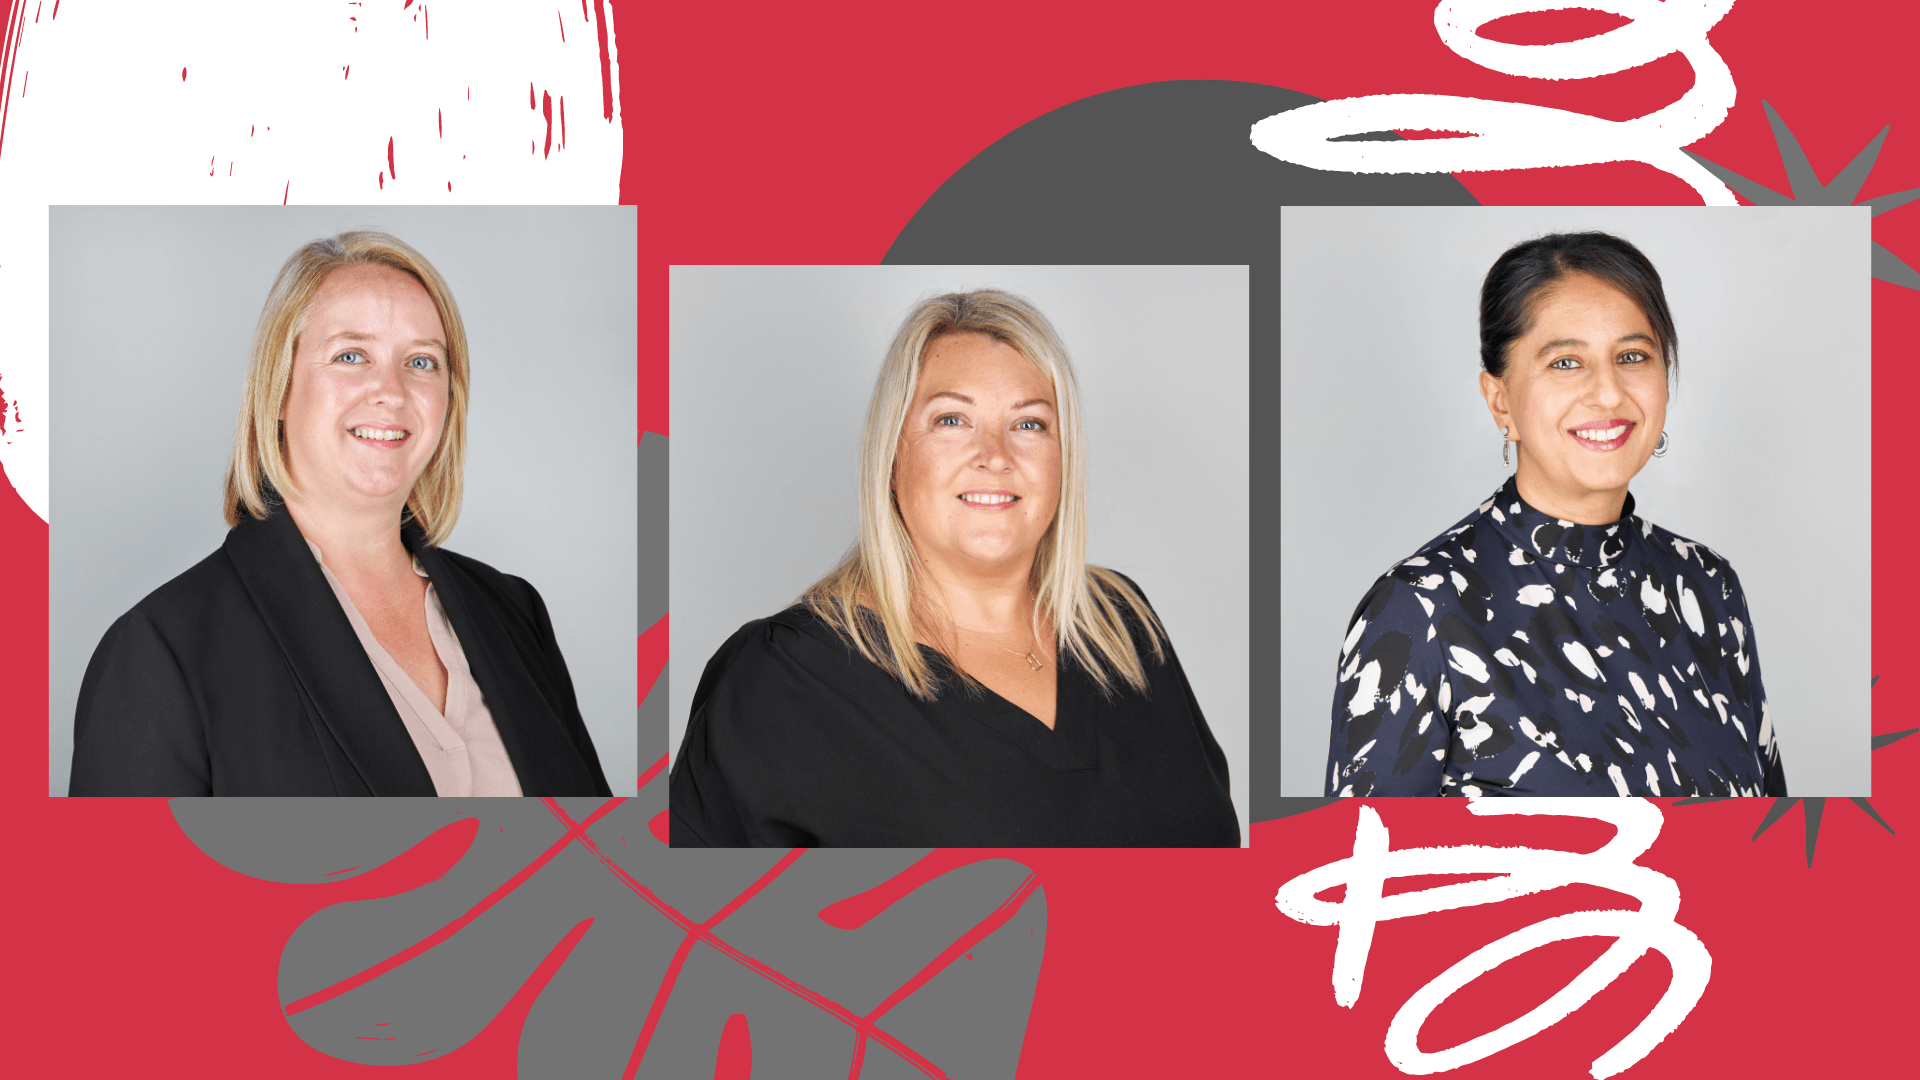 LHR is an independent boutique recruitment agency based in Blackburn, Lancashire and was set up in 2009 by our Director, Laura Hartley.